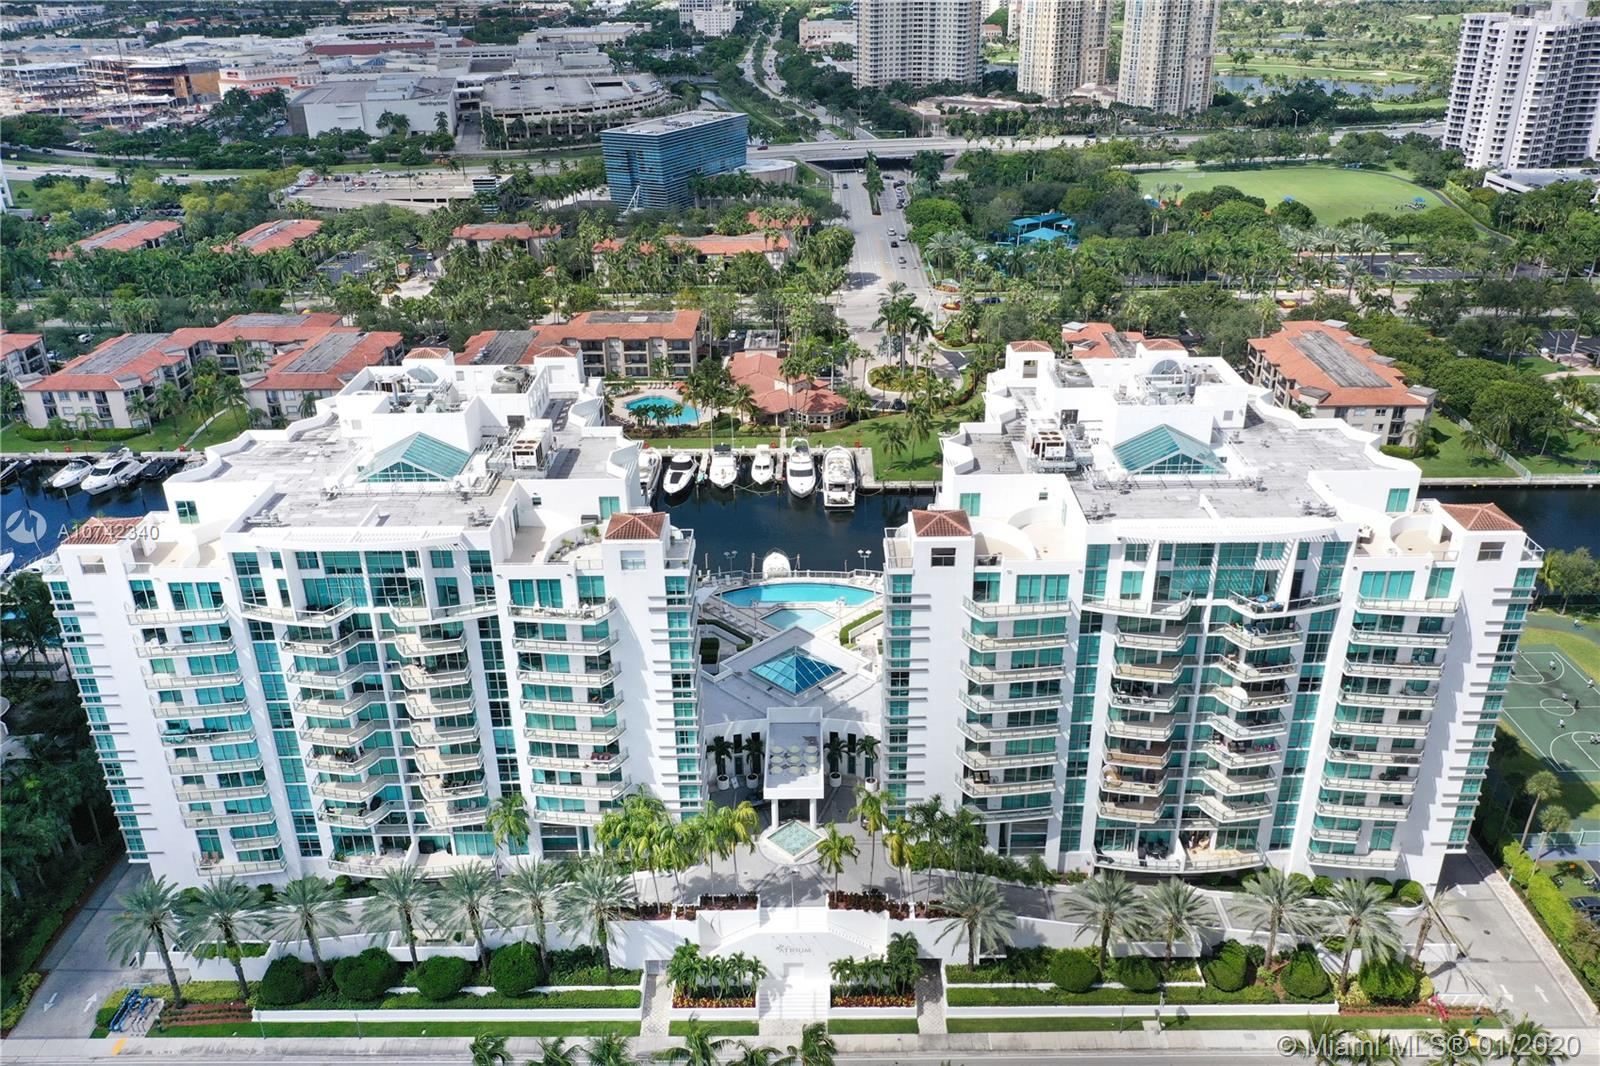 GORGEOUS CORNER UNIT CONDO IN THE HEART OF AVENTURA AT ATRIUM. 3 BEDROOMS PLUS A DEN. INCLUDES 2 STORAGES WITH A/C, STAINLESS STEEL APPLIANCES AND GRANITE COUNTER TOP IN KITCHEN. THE UNIT HAS IMPACT WINDOWS, A HUGE BALCONY, AND BEAUTIFUL VIEWS. CONDO IS FURNISHED. EXCELLENT AMENITIES INCLUDING; GYM, POOL, SAUNA, PARTY ROOM, VALET, 24-HR CONCIERGE, PLAYGROUND AND MORE. EXCELLENT LOCATION; CLOSE TO AVENTURA MALL, A RATED SCHOOLS, RESTAURANTS AND ENTERTAIMENT. A MUST SEE!